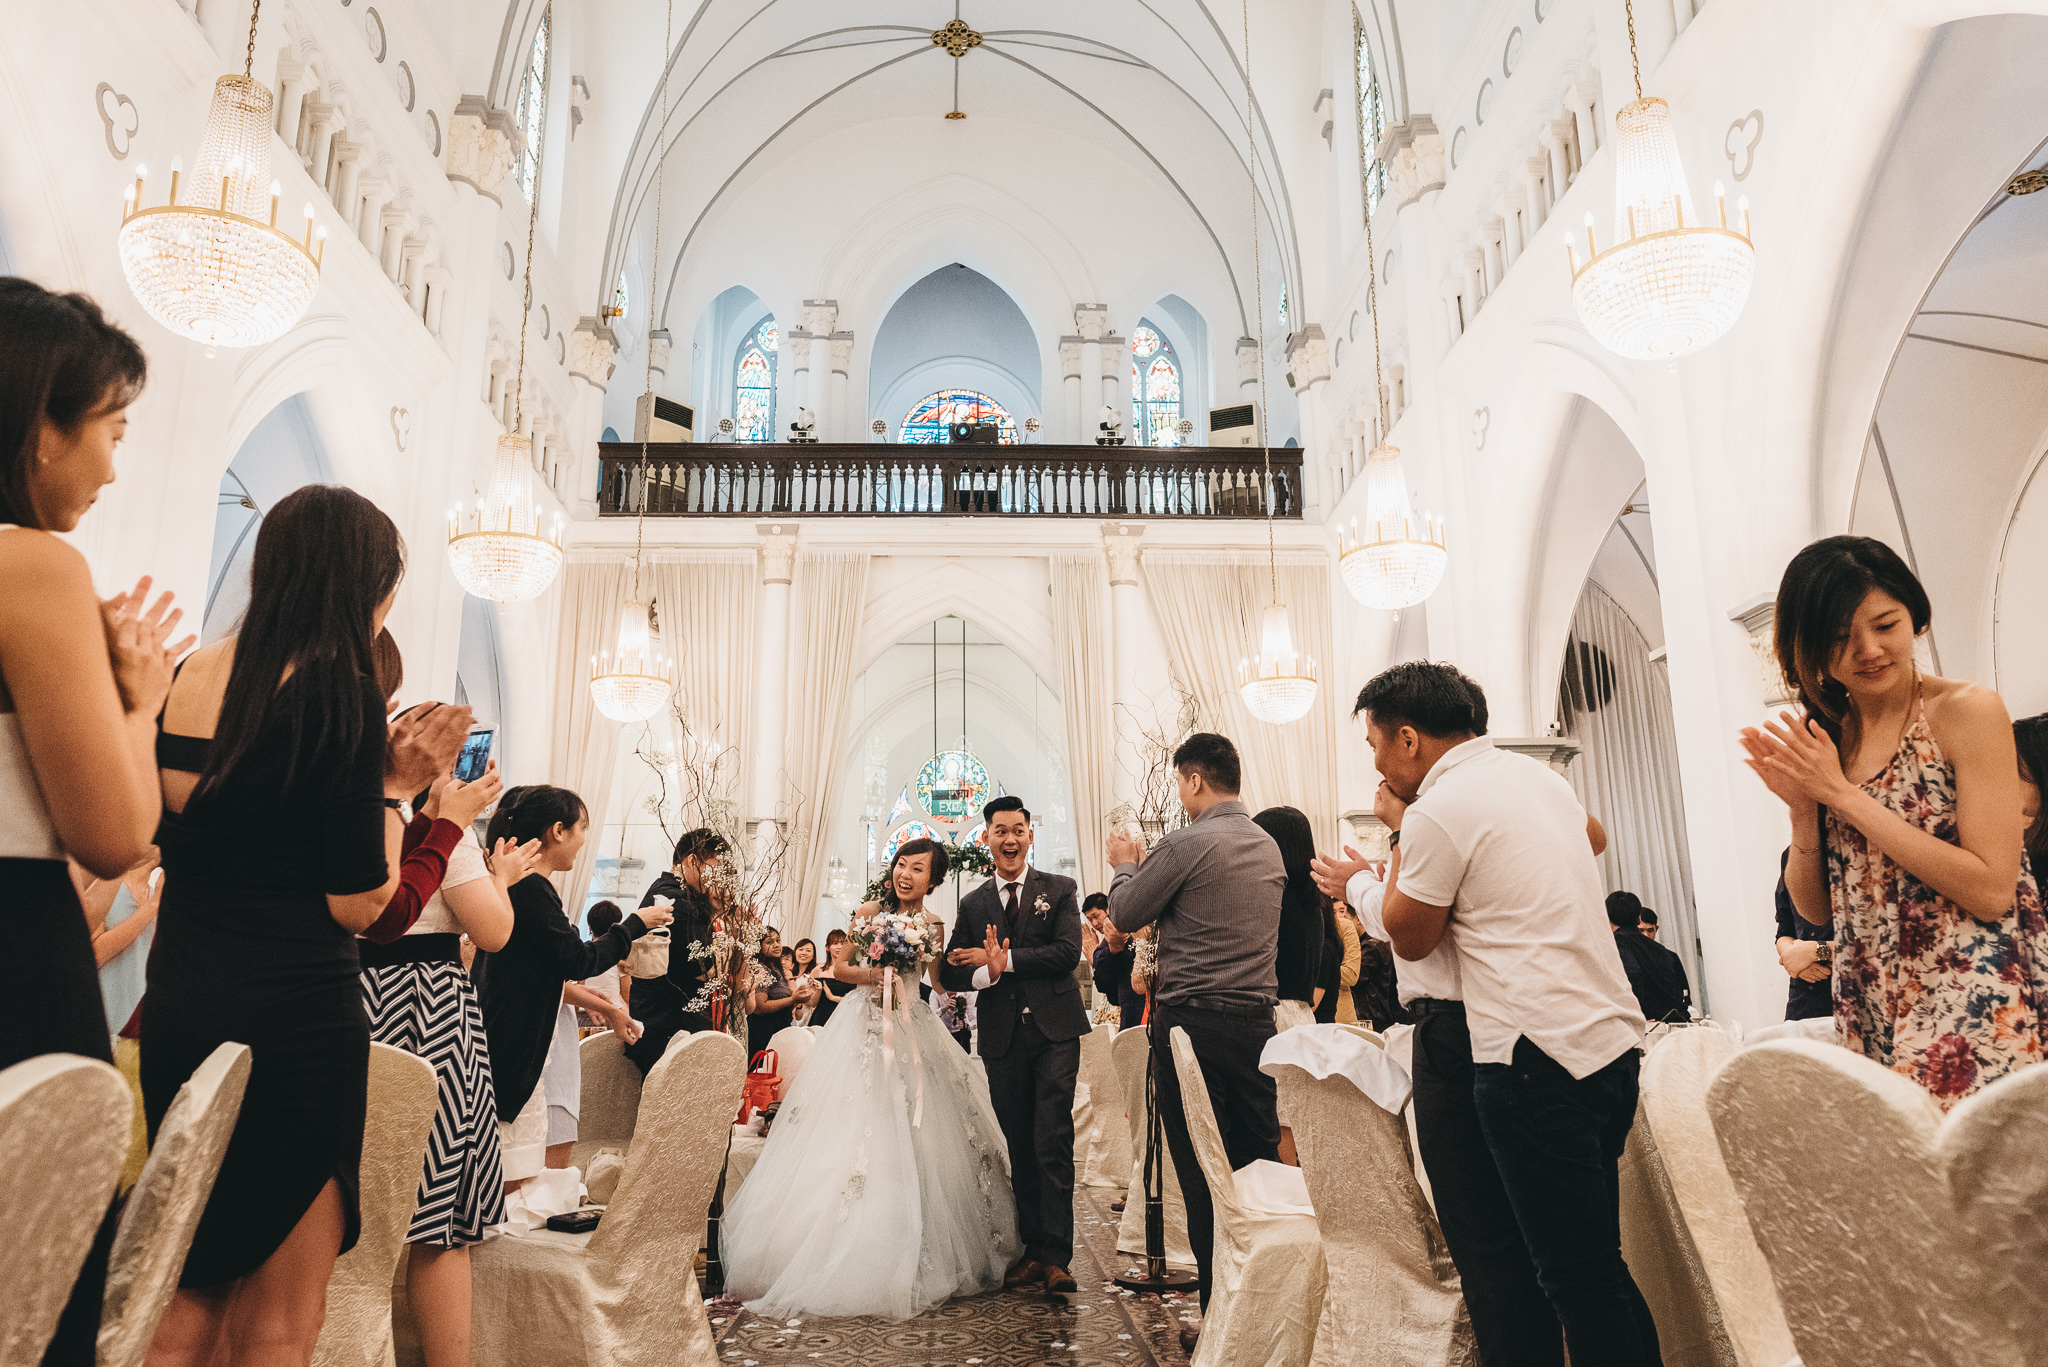 Alice & Wei Bang Wedding Day Highlights (resized for sharing) - 103.jpg